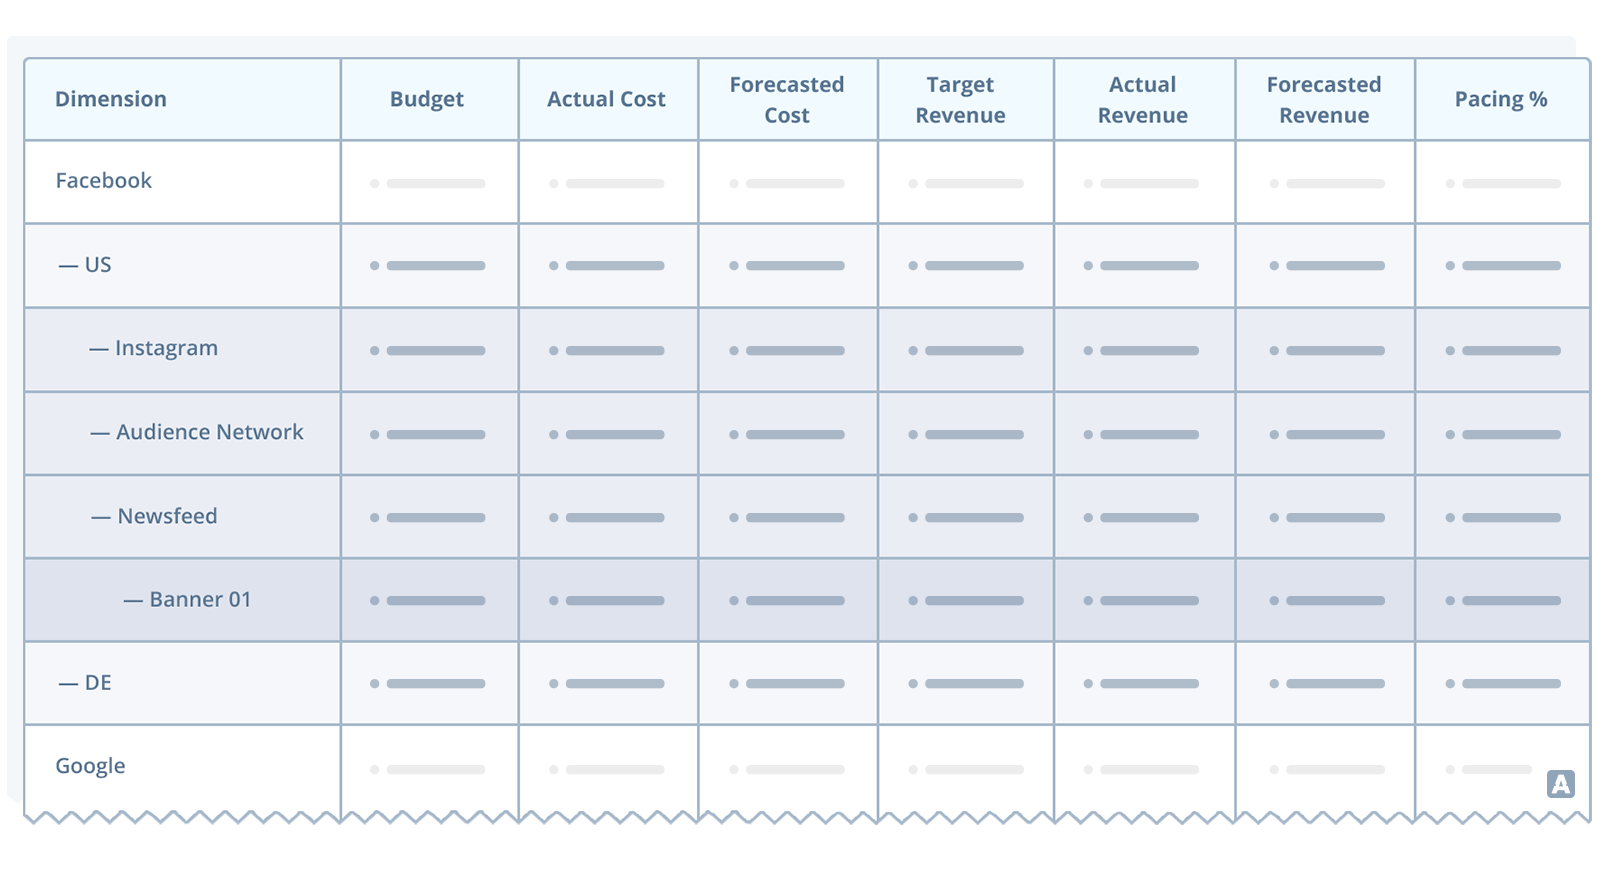 Table to show forecast and pacing of ad spend across Facebook and Google, including dimensions budge, actual cost, forecasted cost, target revenue, forecasted revenue and pacing %